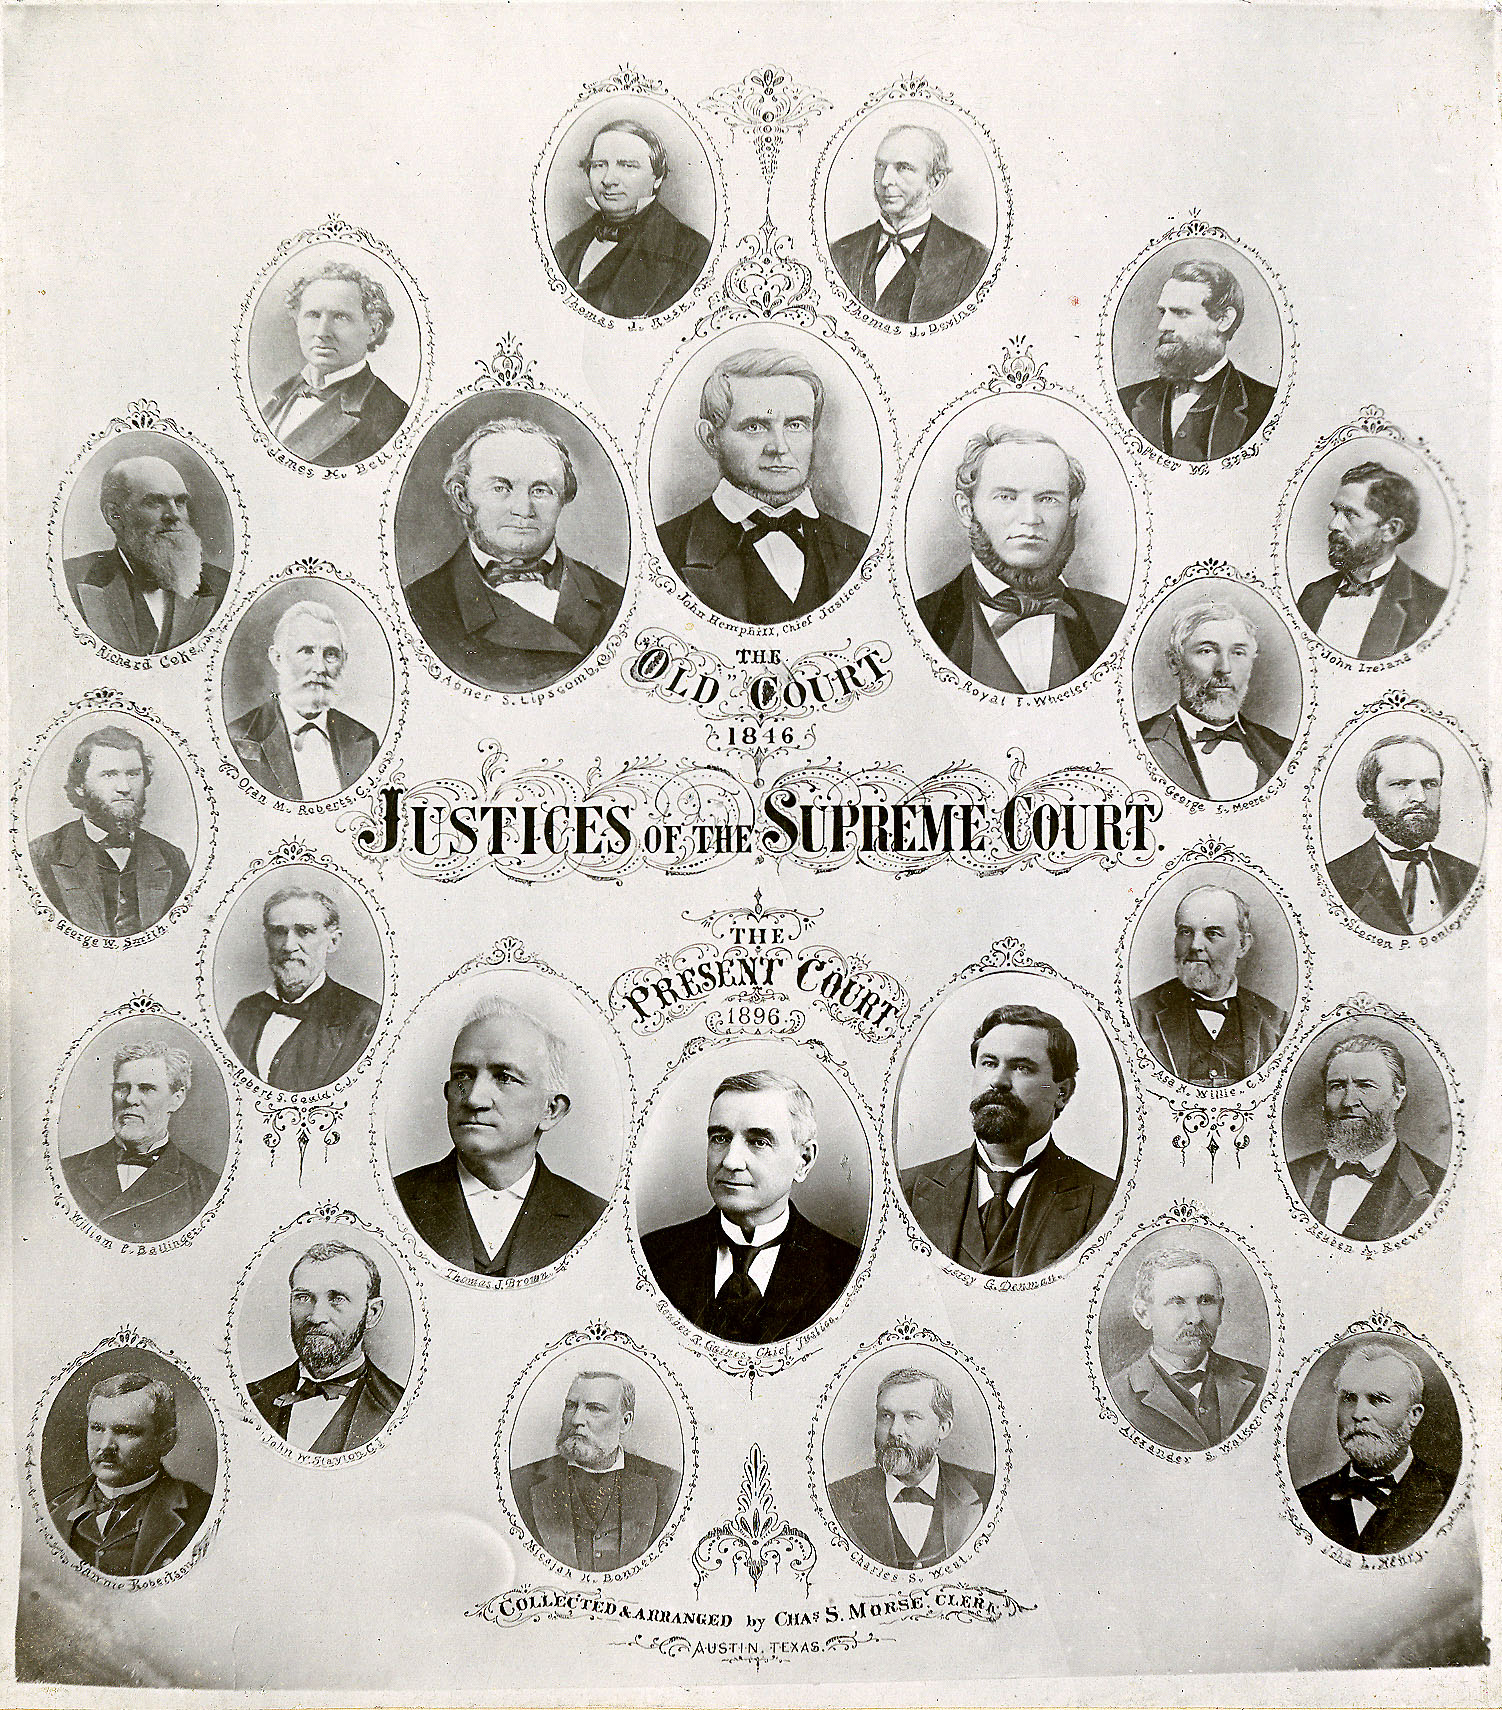 1896 50th Anniversary Cabinet Card, featuring portraits of the 1846 and 1896 justices. Photo: Texas Supreme Court Archives.